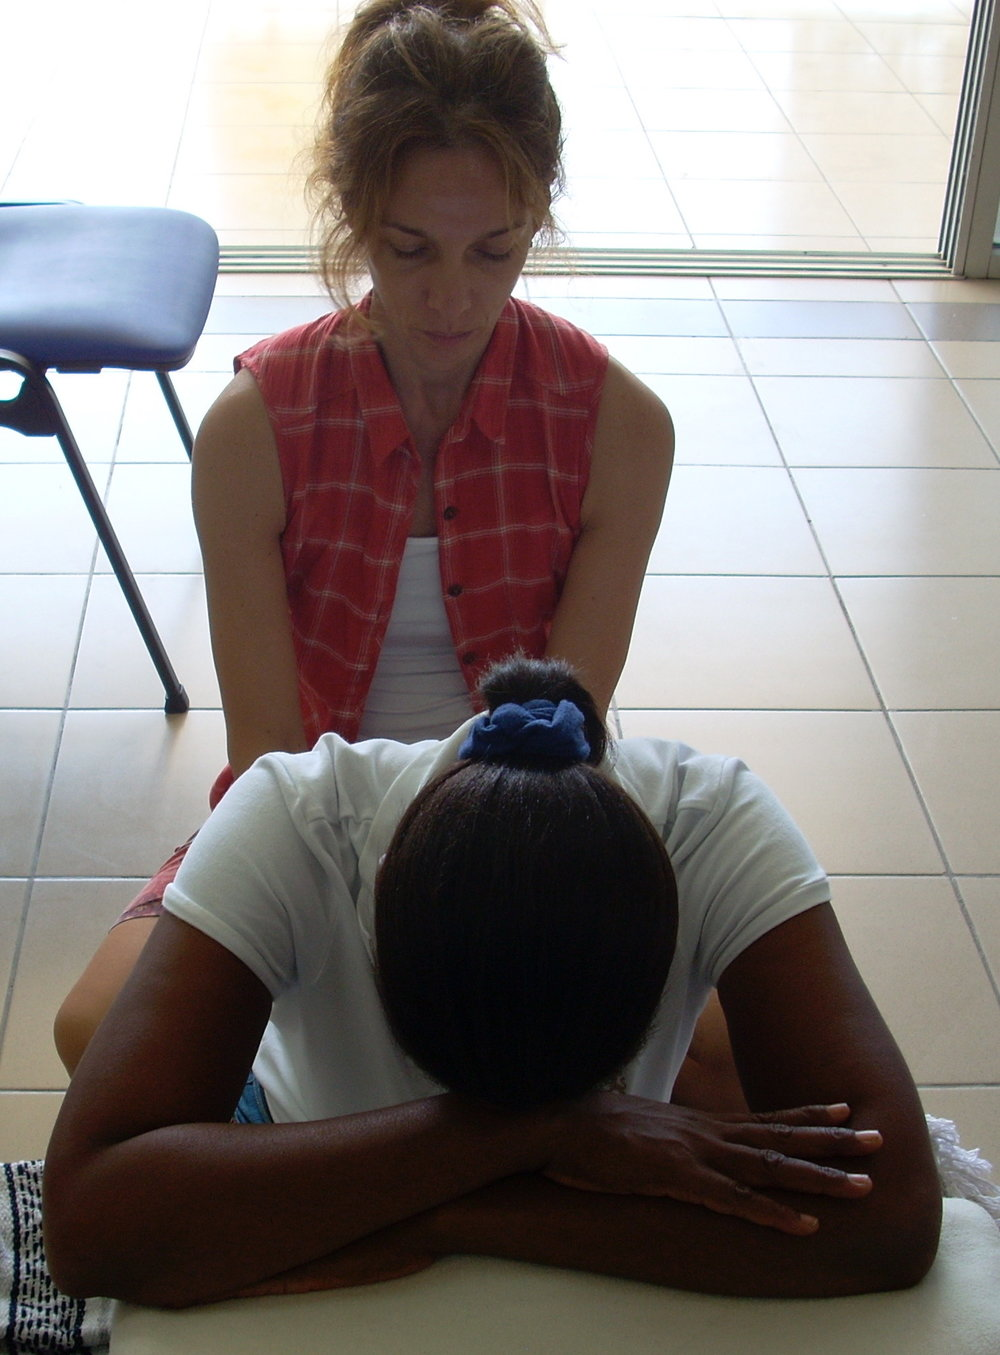 Reiki and restorative seated forward bend...deep bows!